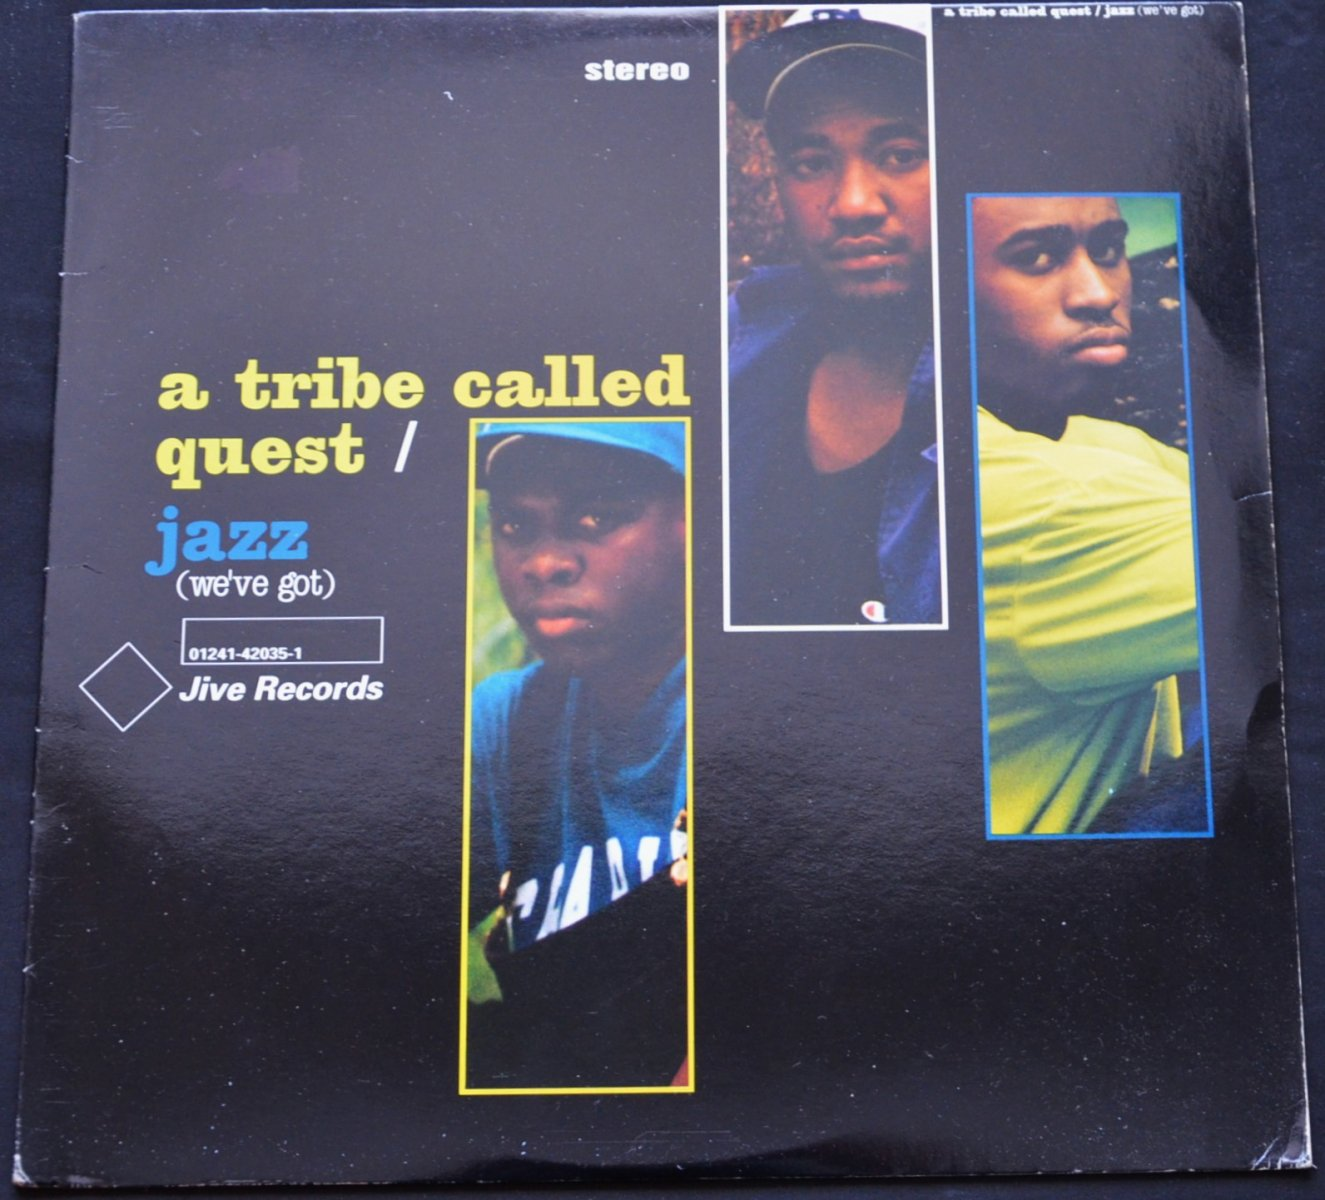 A TRIBE CALLED QUEST / JAZZ (WE'VE GOT) / BUGGIN' OUT (12